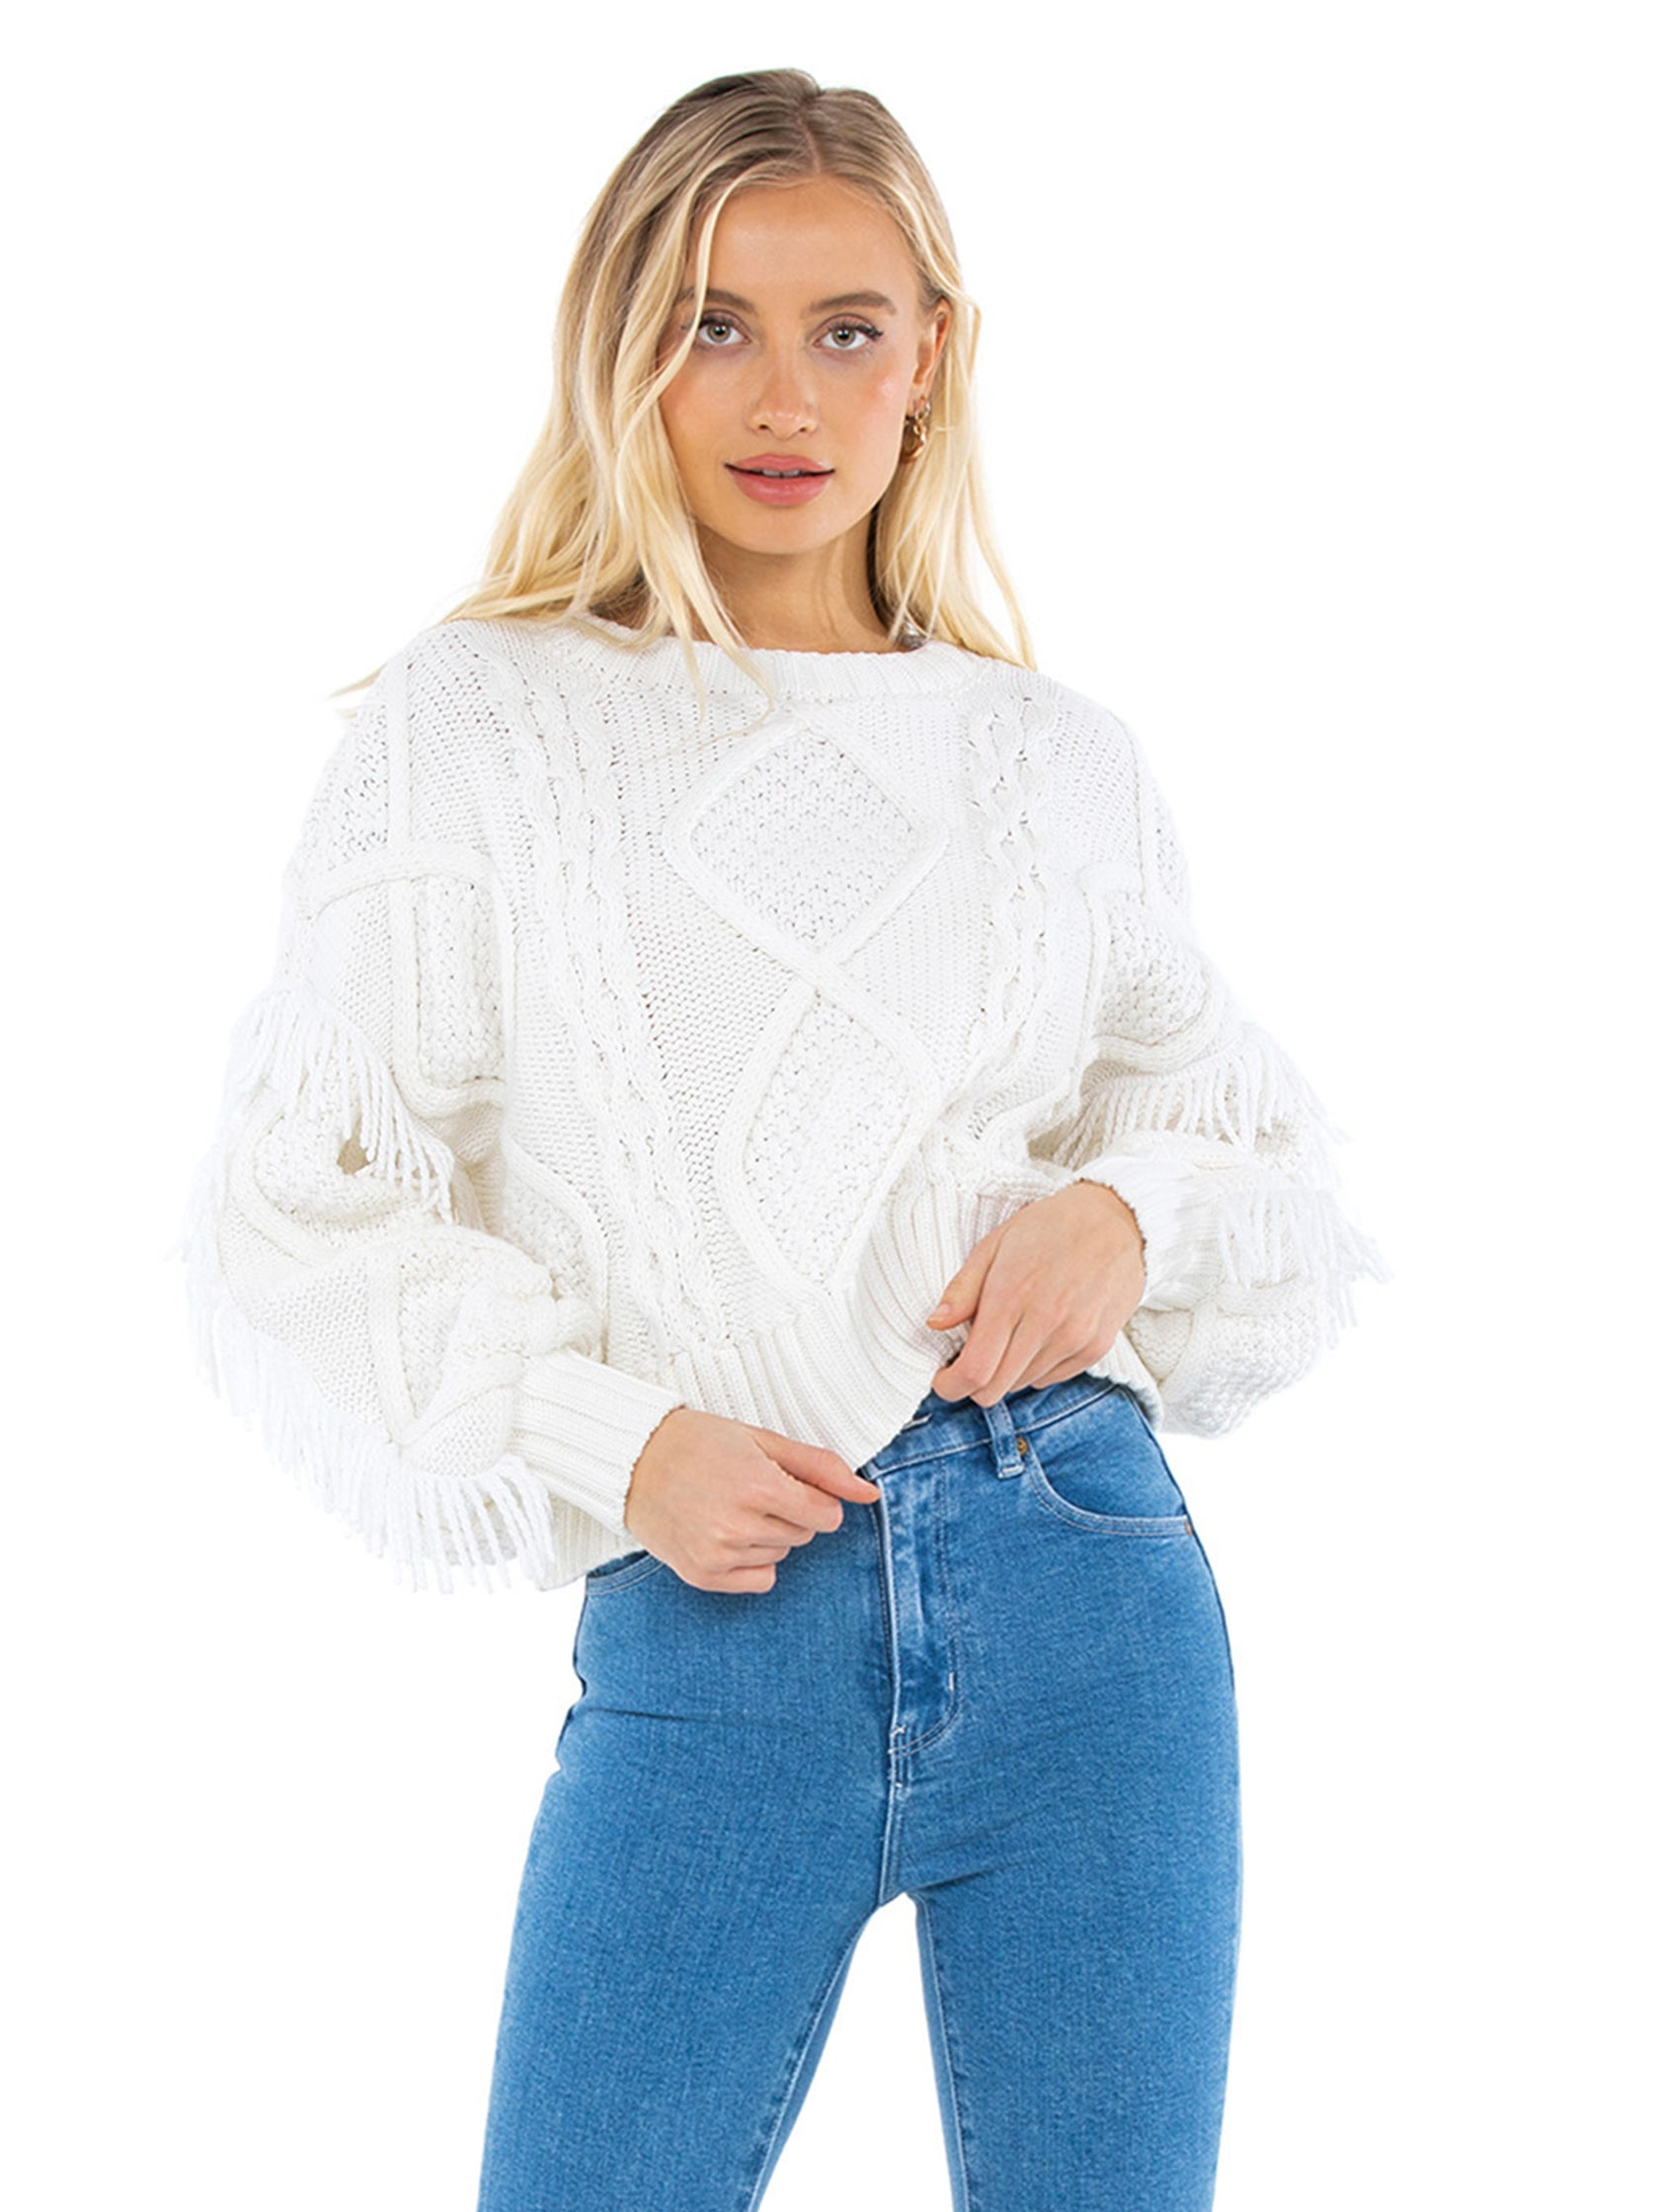 Girl outfit in a sweater rental from Line & Dot called Jasper Fringe Sweater